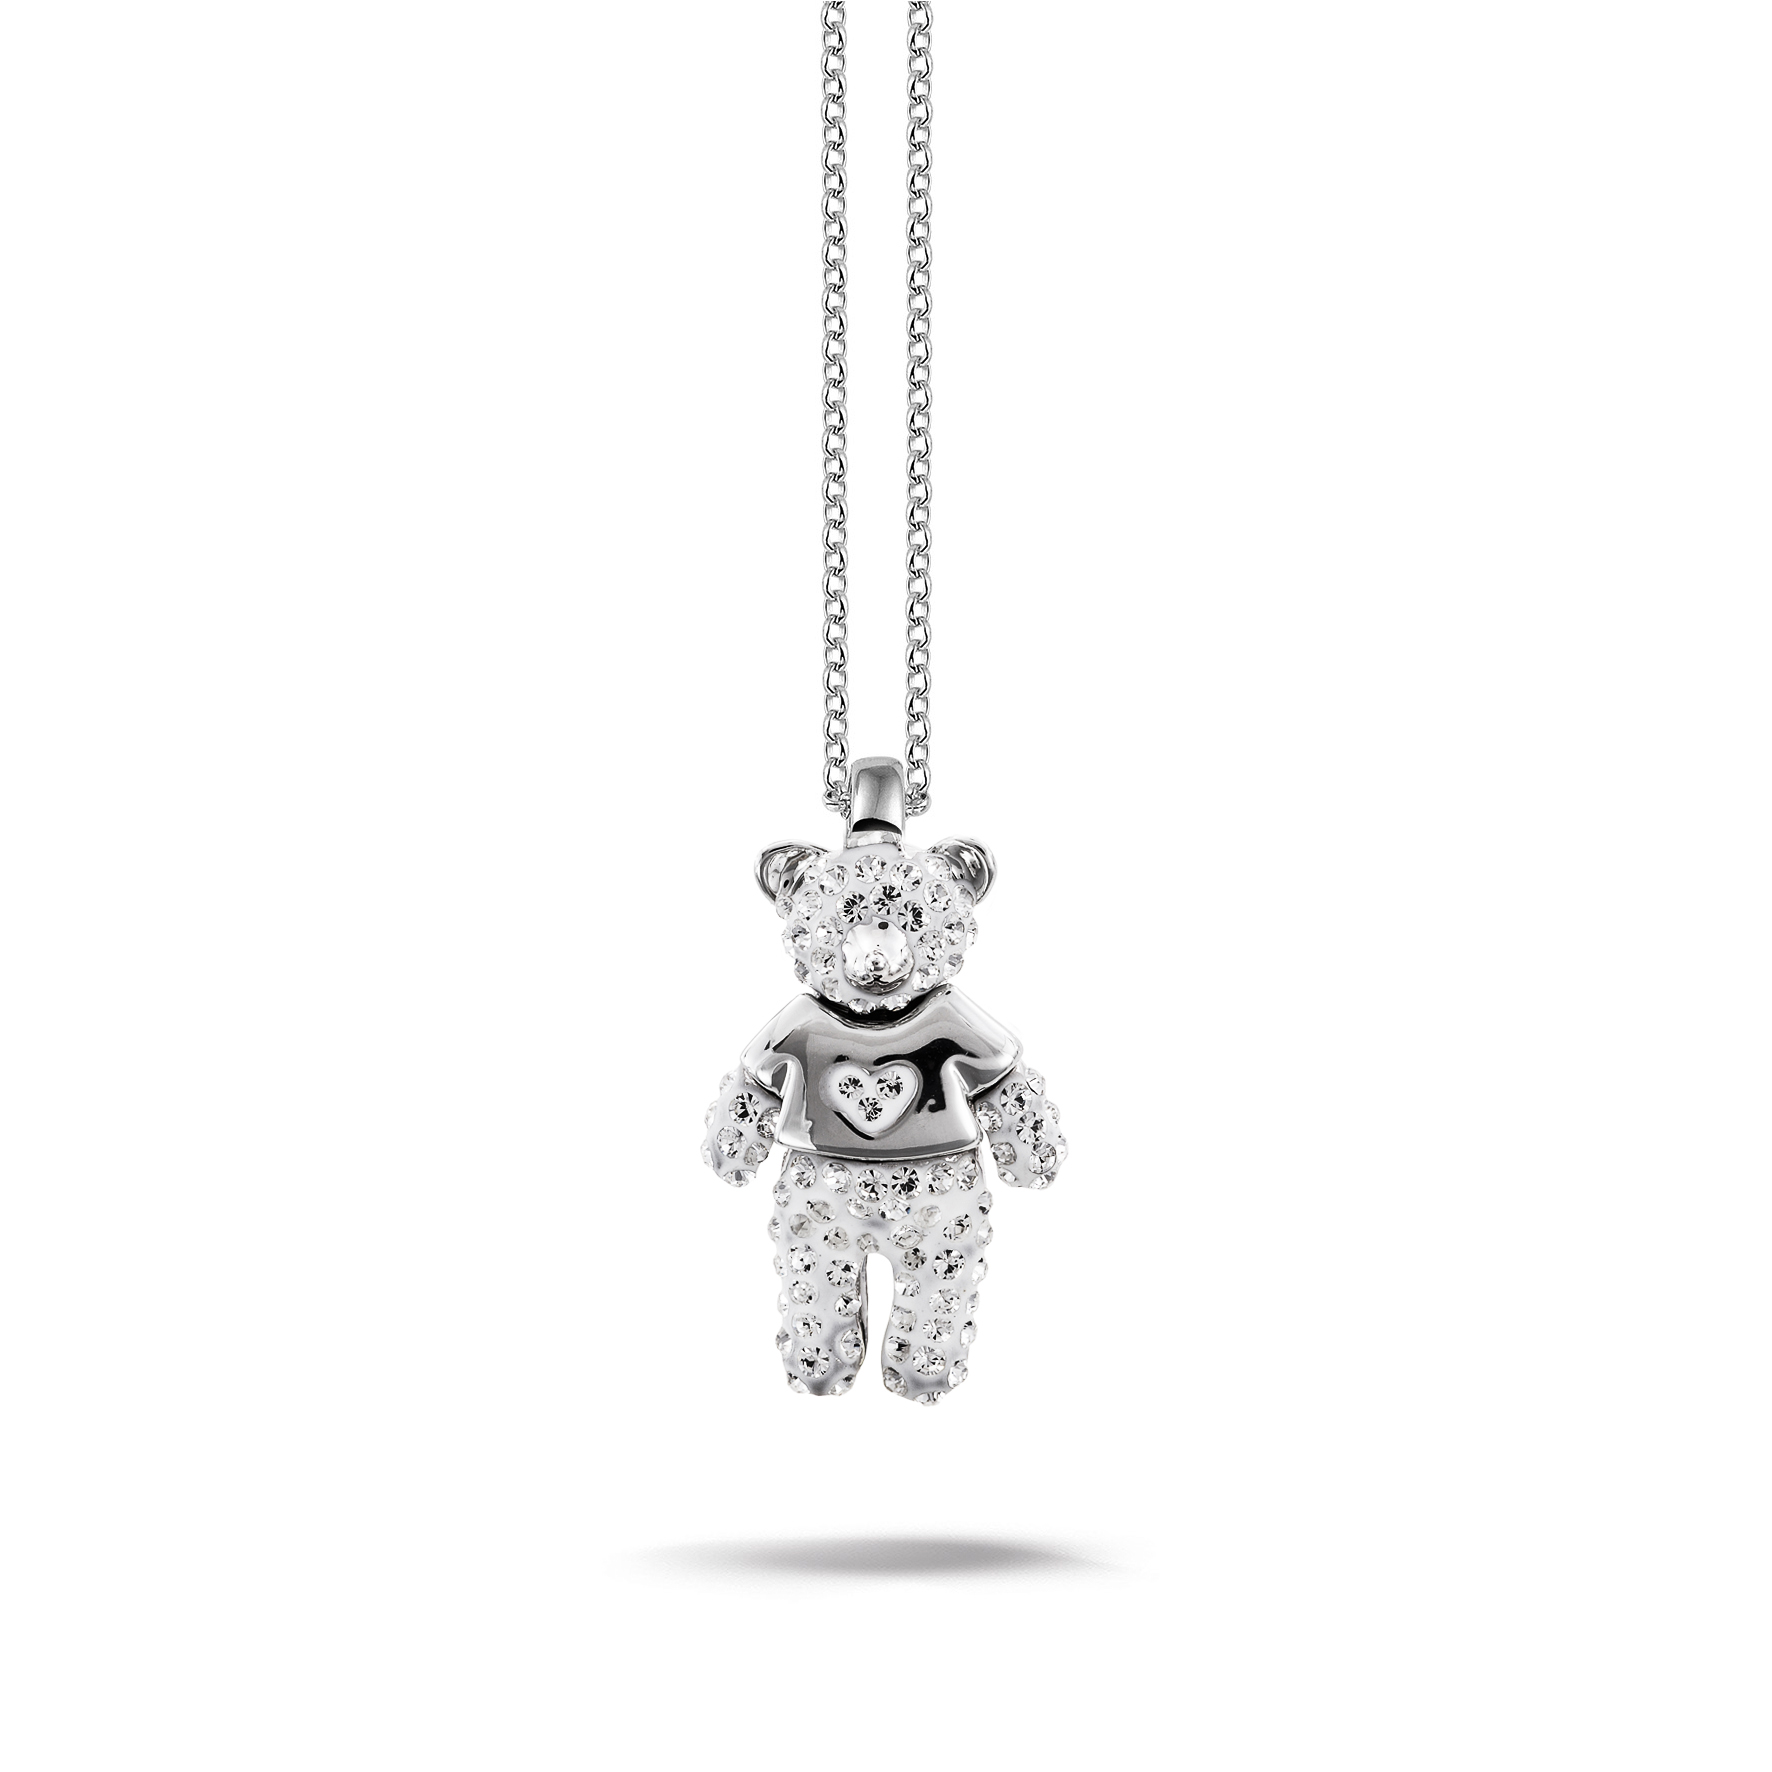 pomellato pendant jewelry bear products necklaces teddy necklace enlarged